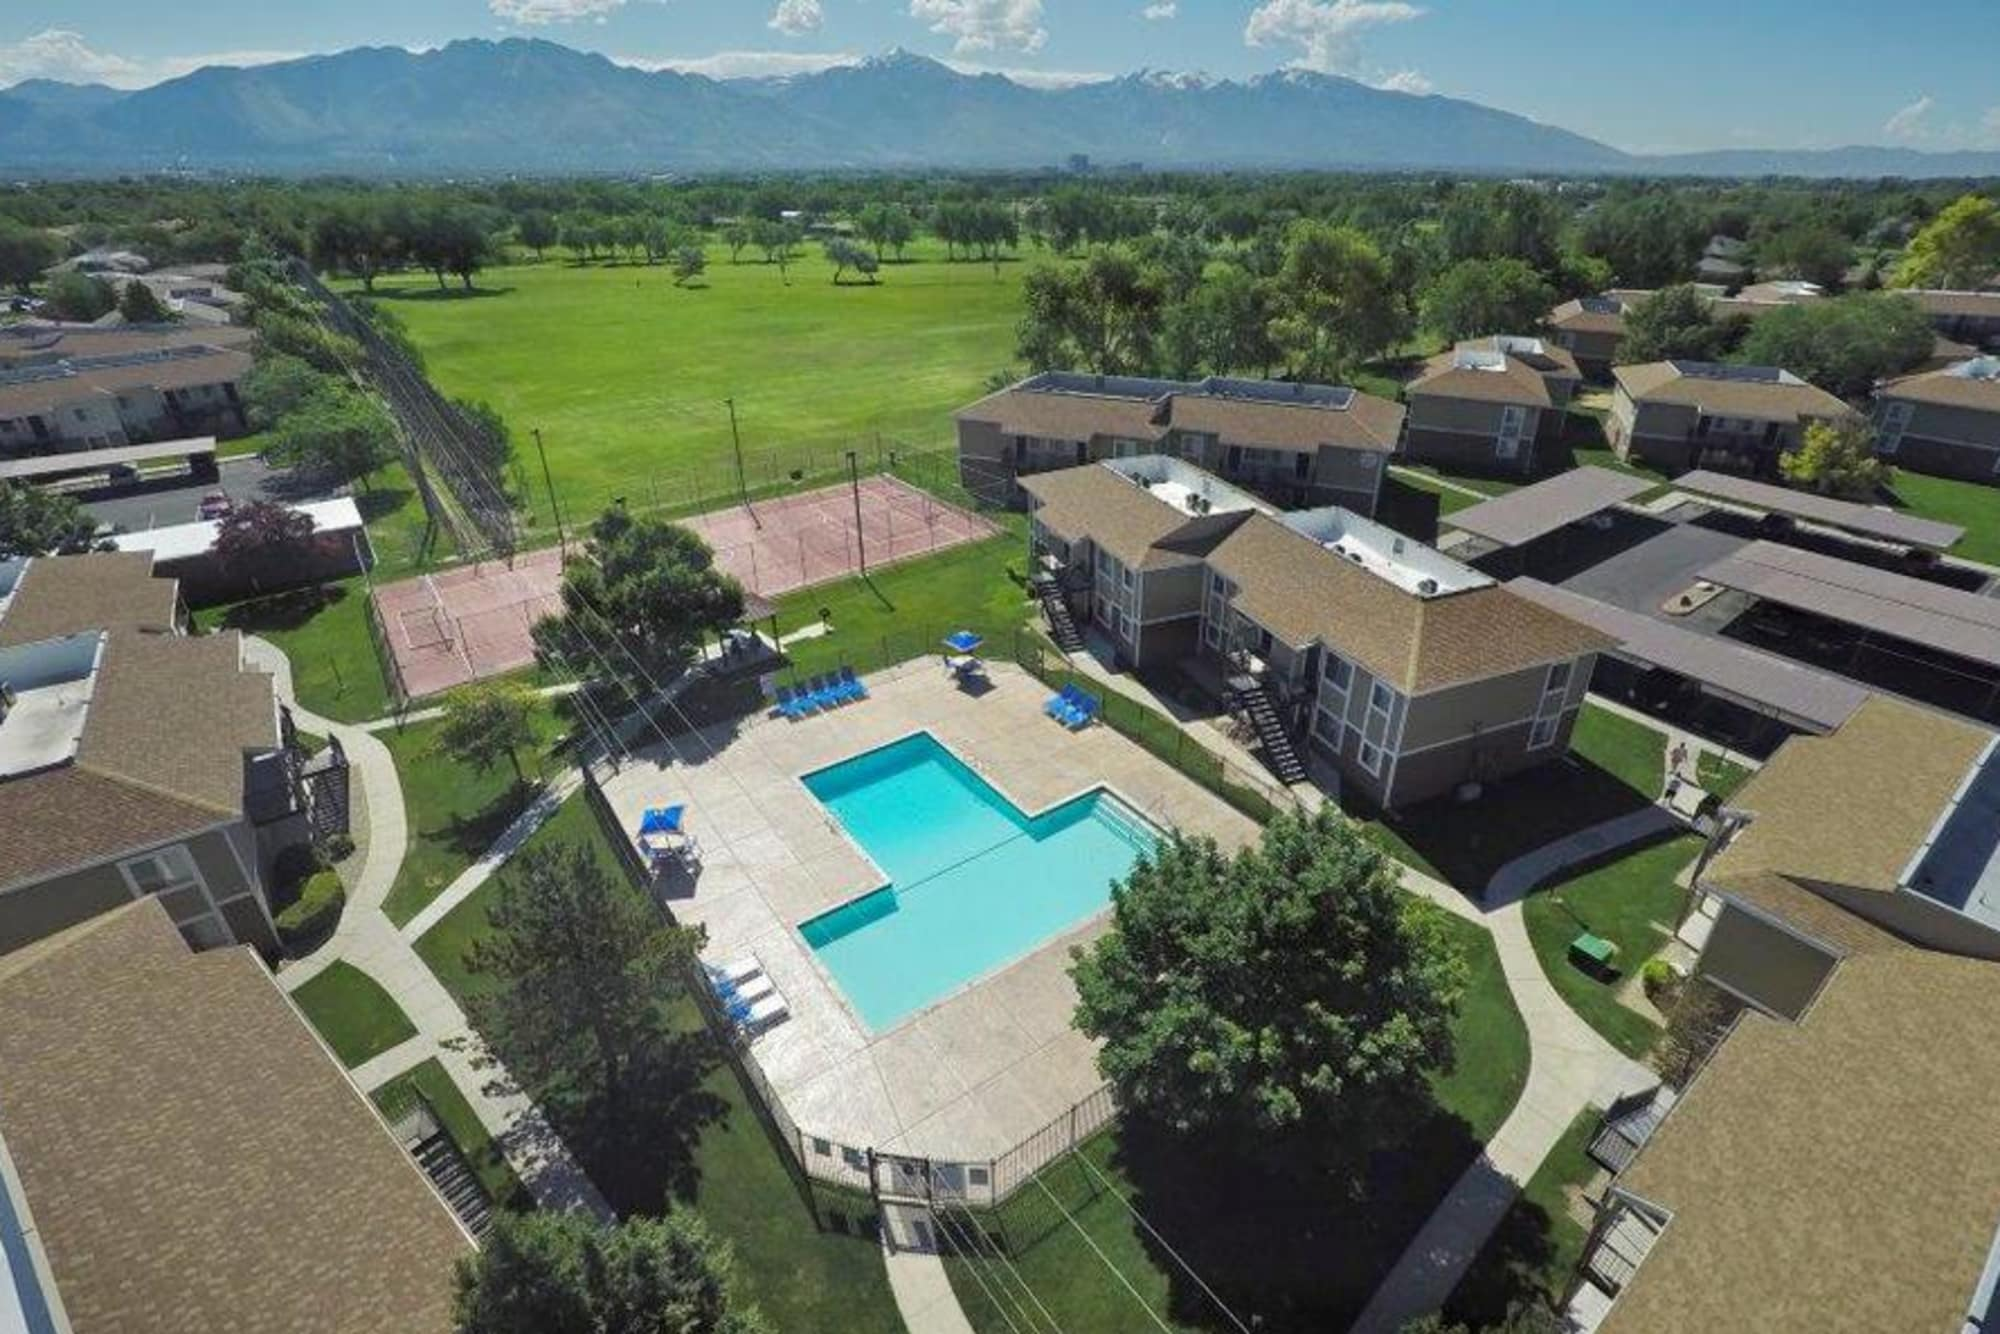 aerial view of property and surrounding area including a golf course next door at Callaway Apartments in Taylorsville, UT